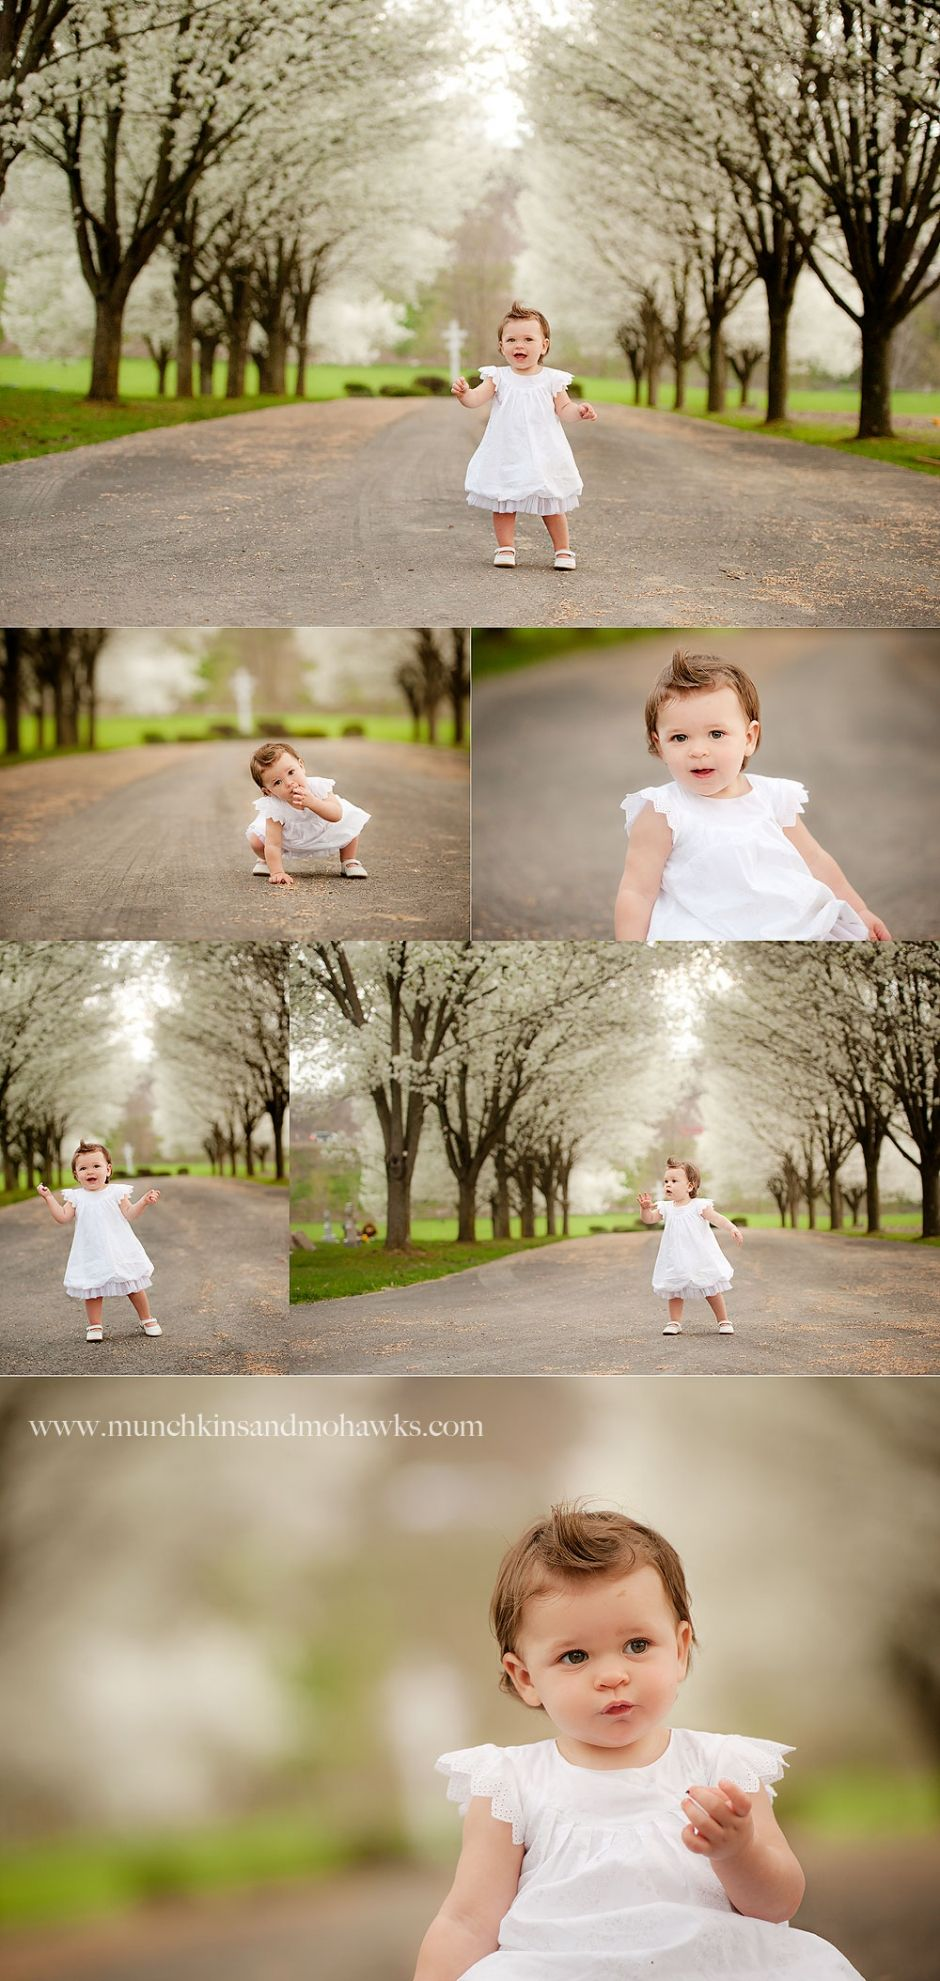 One Year Old Picture Ideas : picture, ideas, Sweet, Pictures,, Toddler, Photography,, Photography